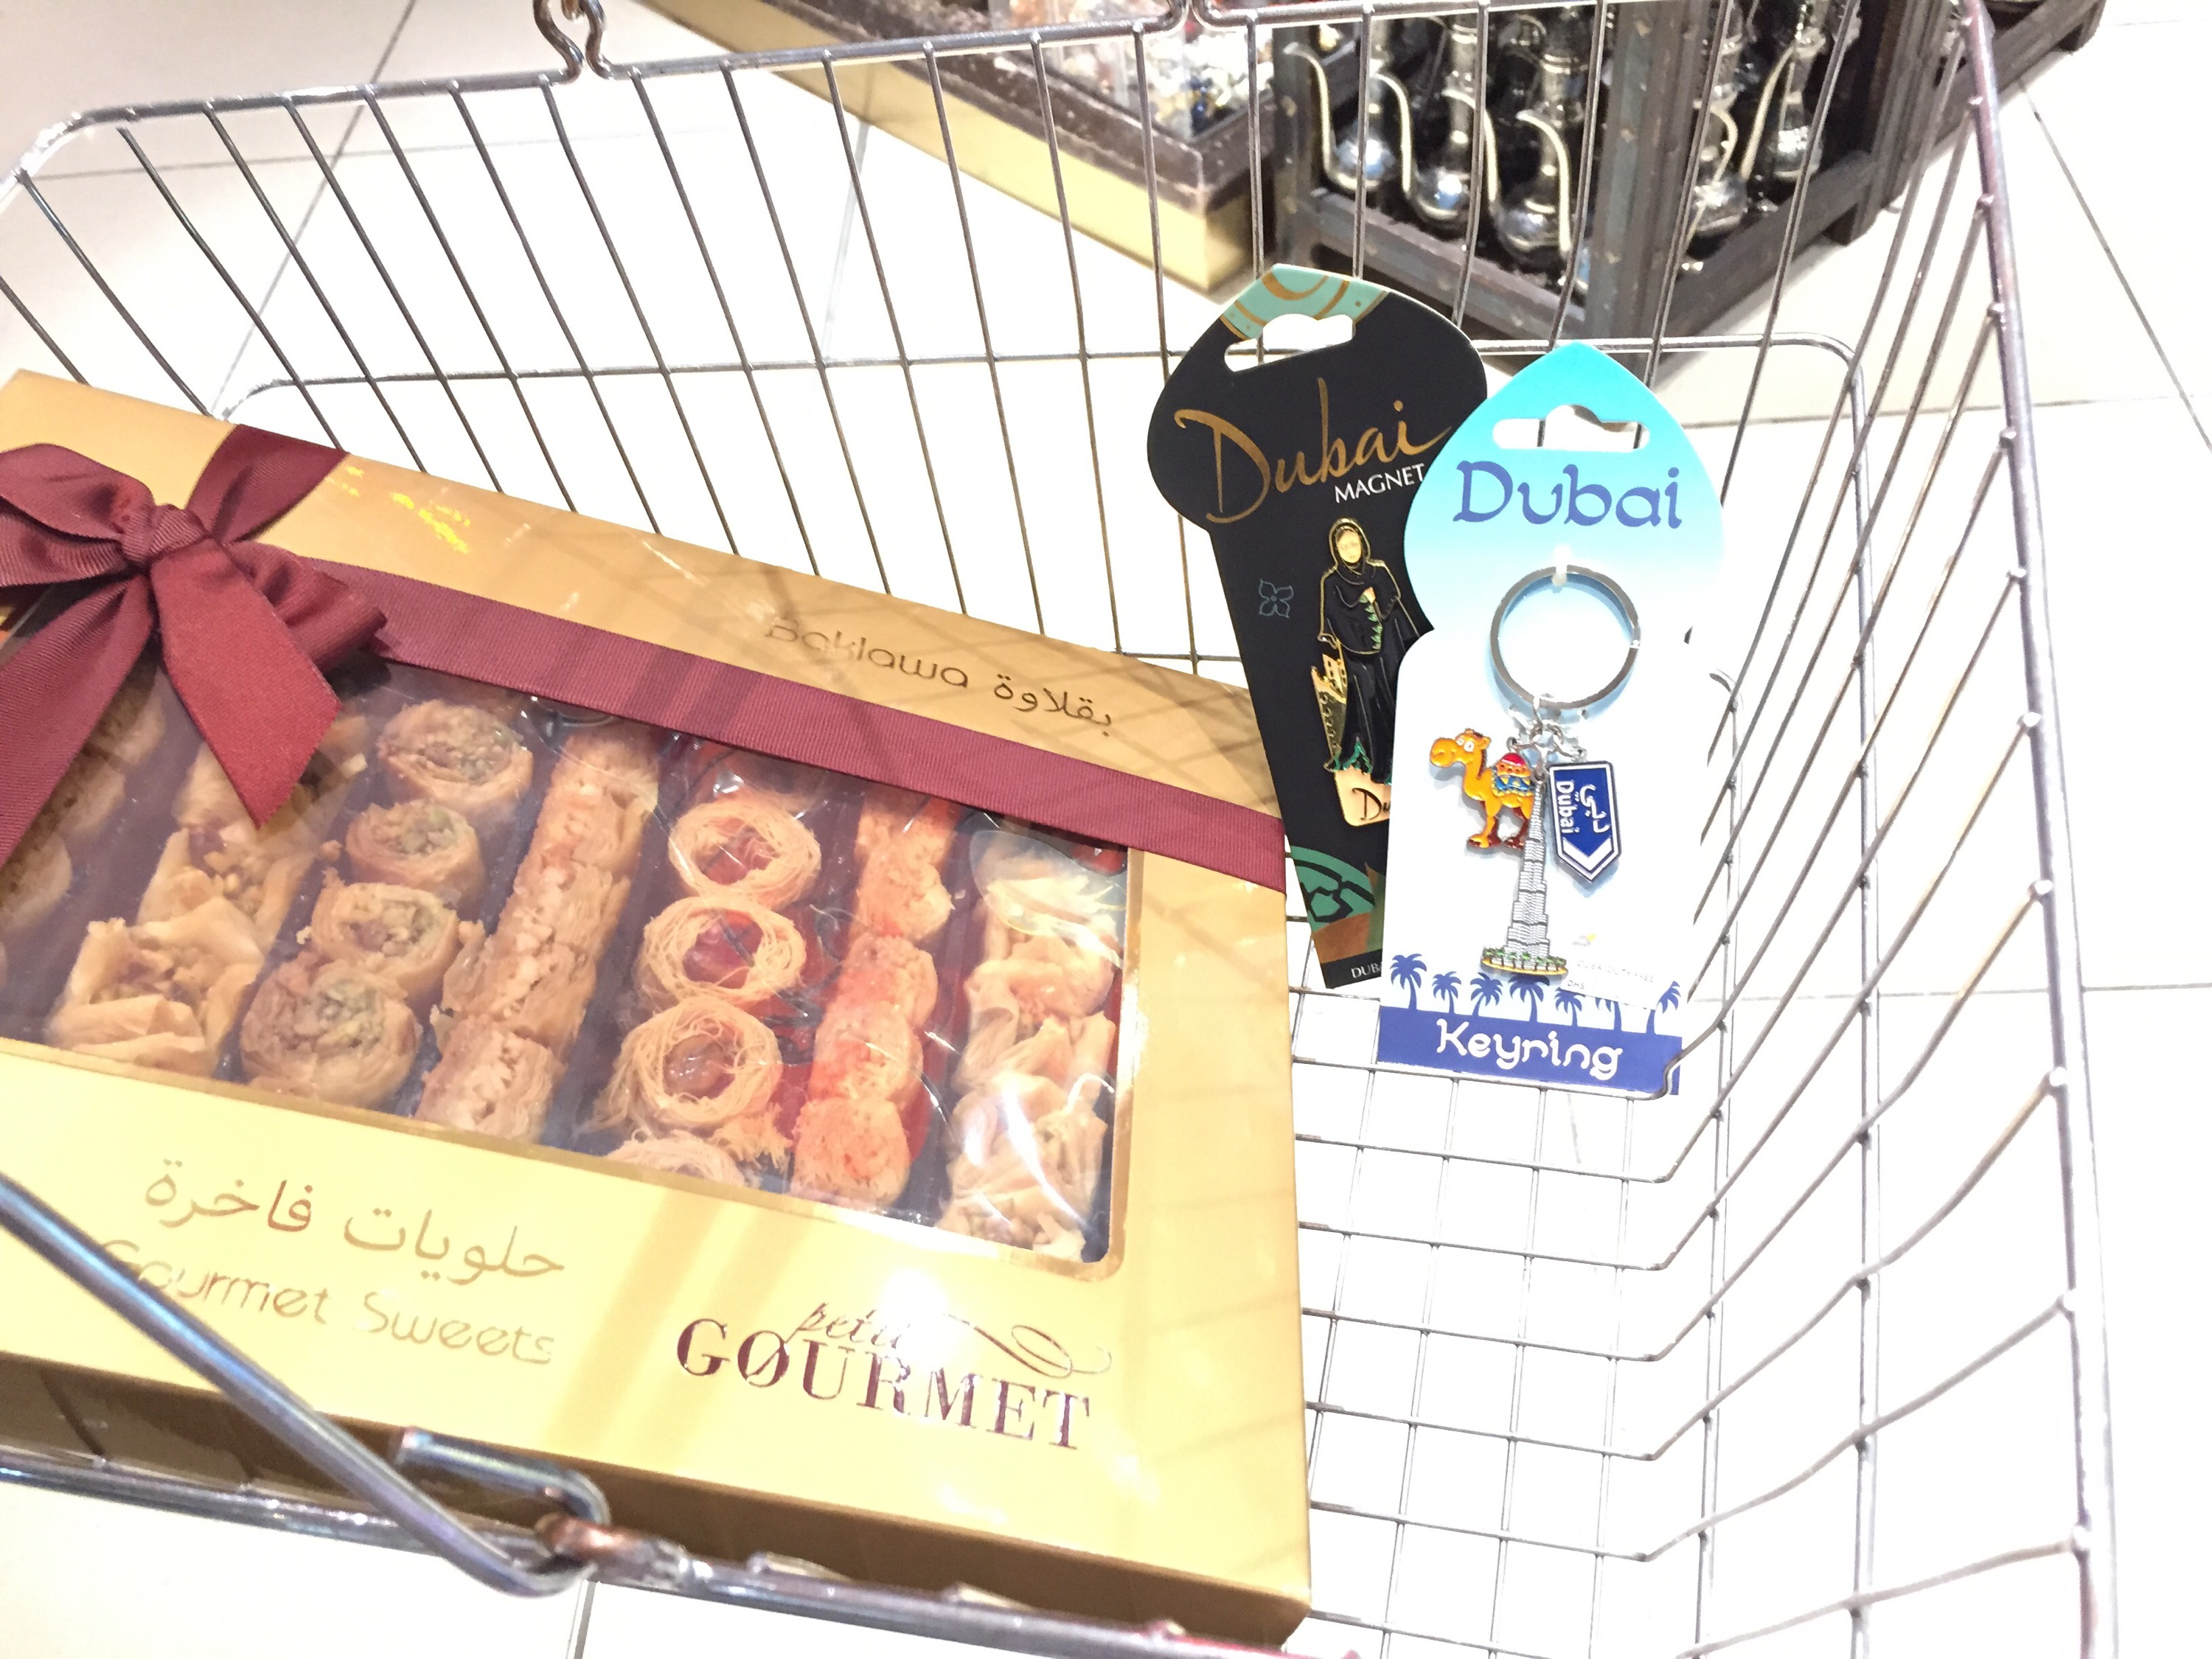 What can you buy from Dubai Airport?